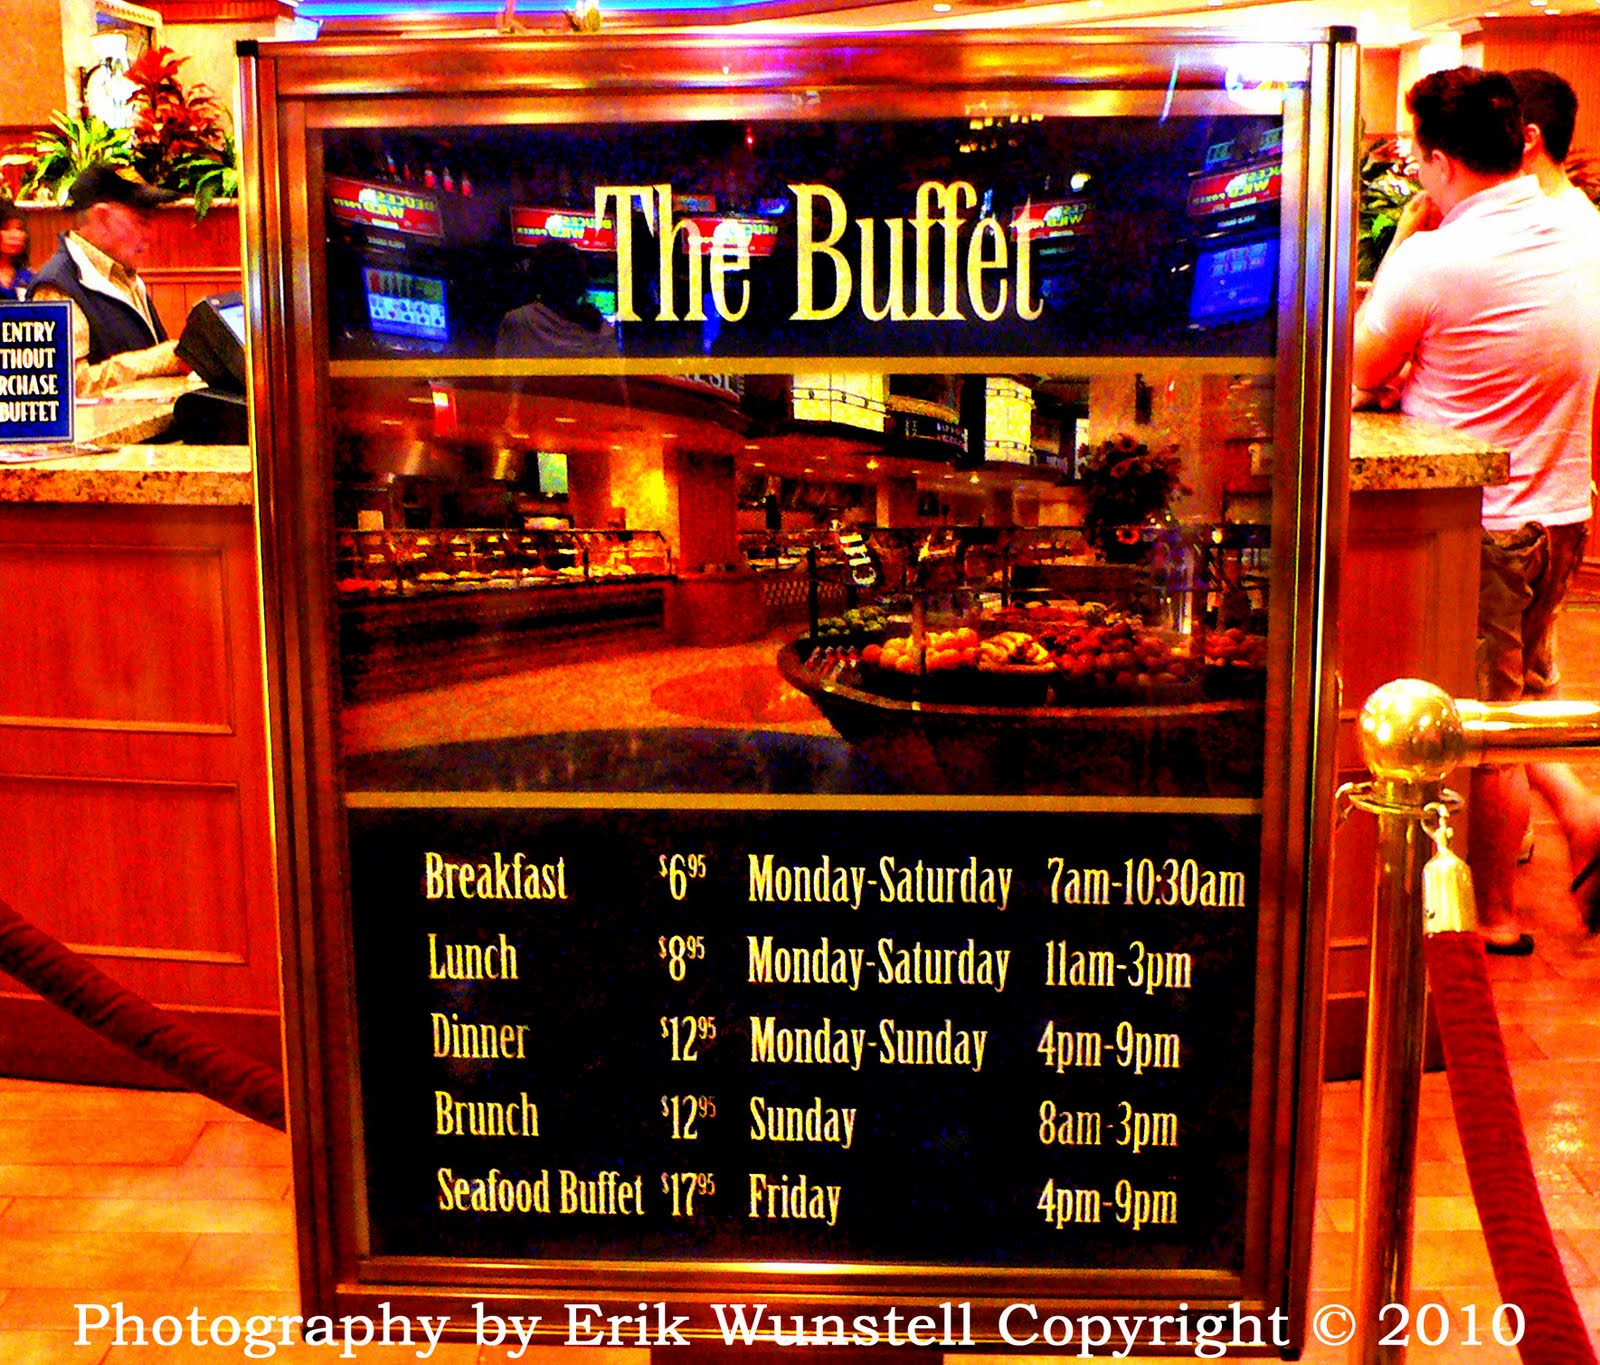 vegas breakfast buffet prices